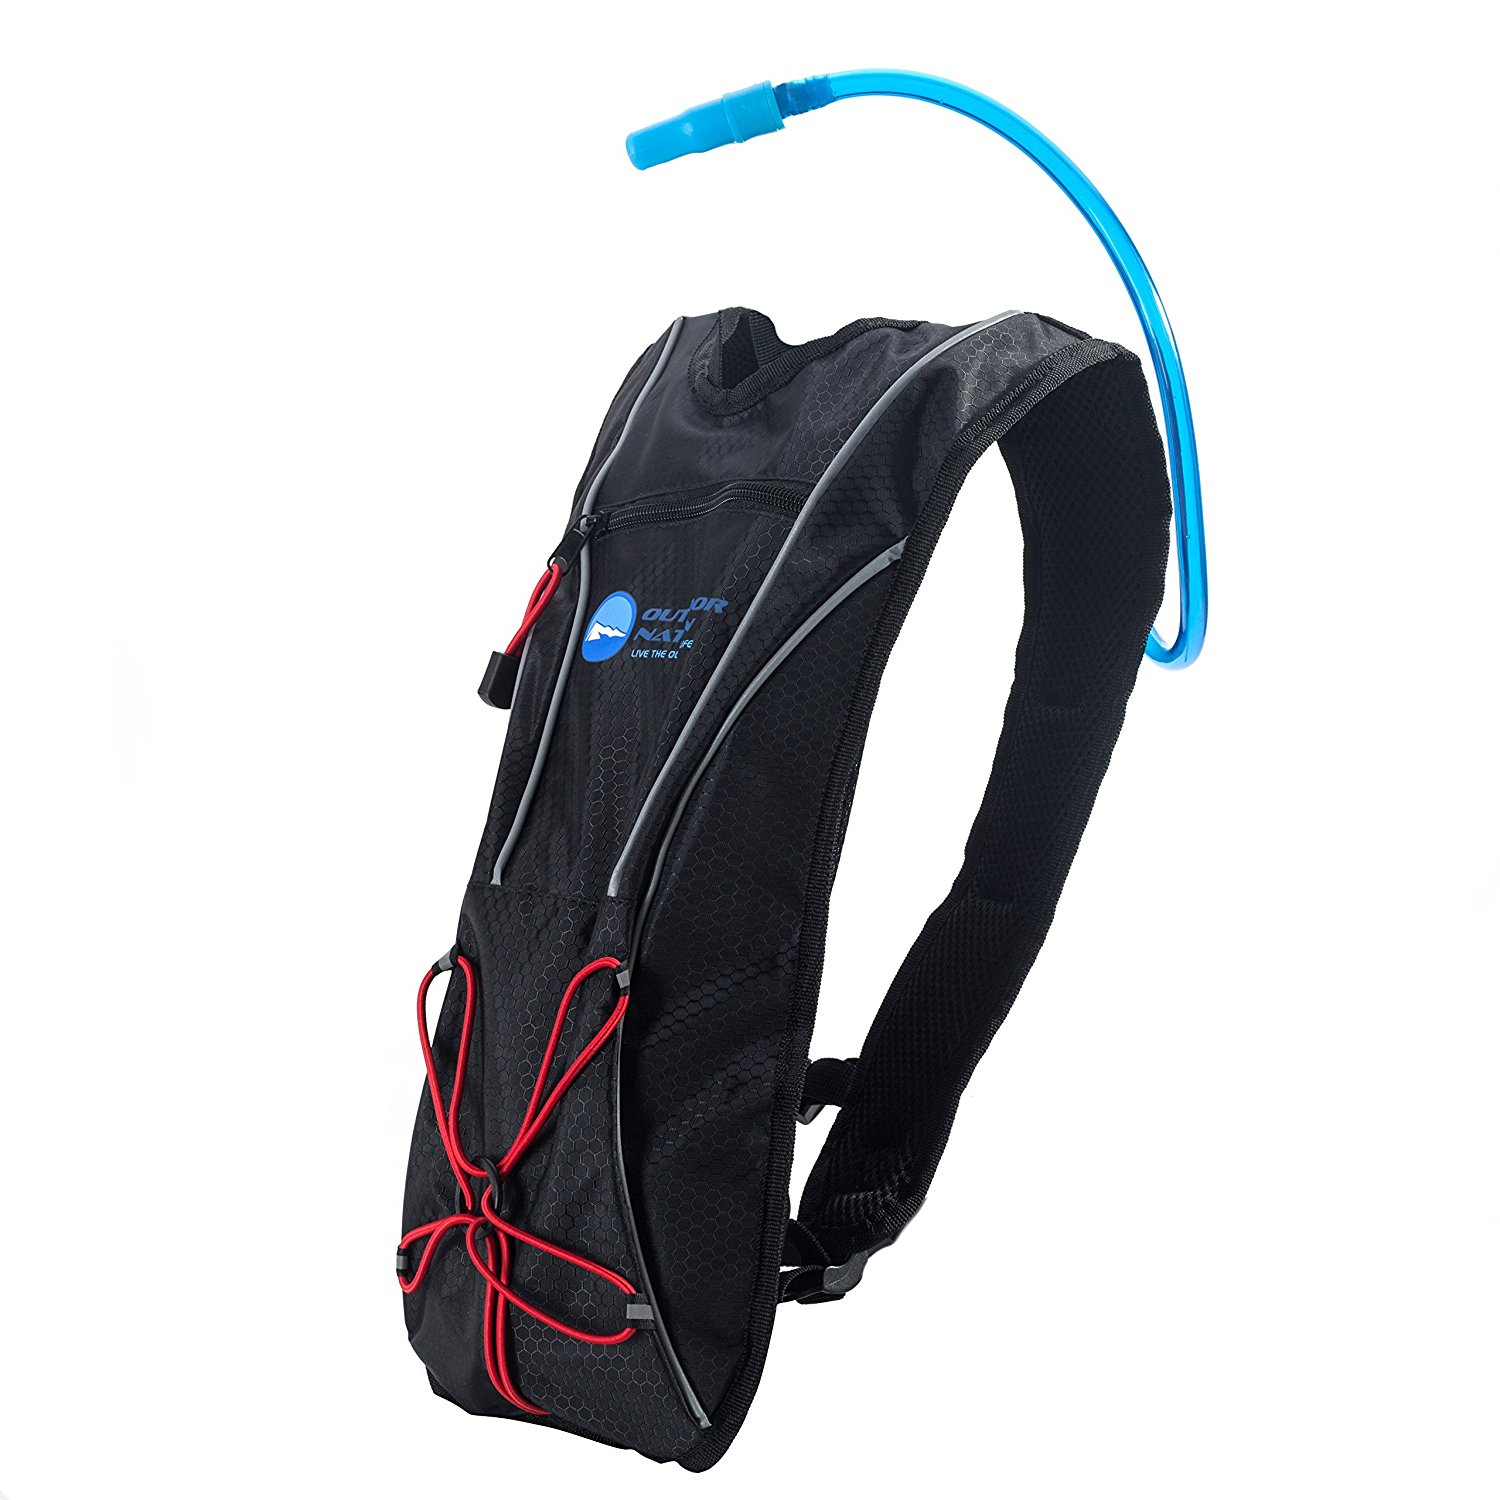 Outdoor Nation Hydration Pack with 1.5 L Water Backpack Bladder. Adjustable Strap Fits Men, Women or Kids. Ideal for Running, Cycling, Bike/hiking, Climbing or Hunting